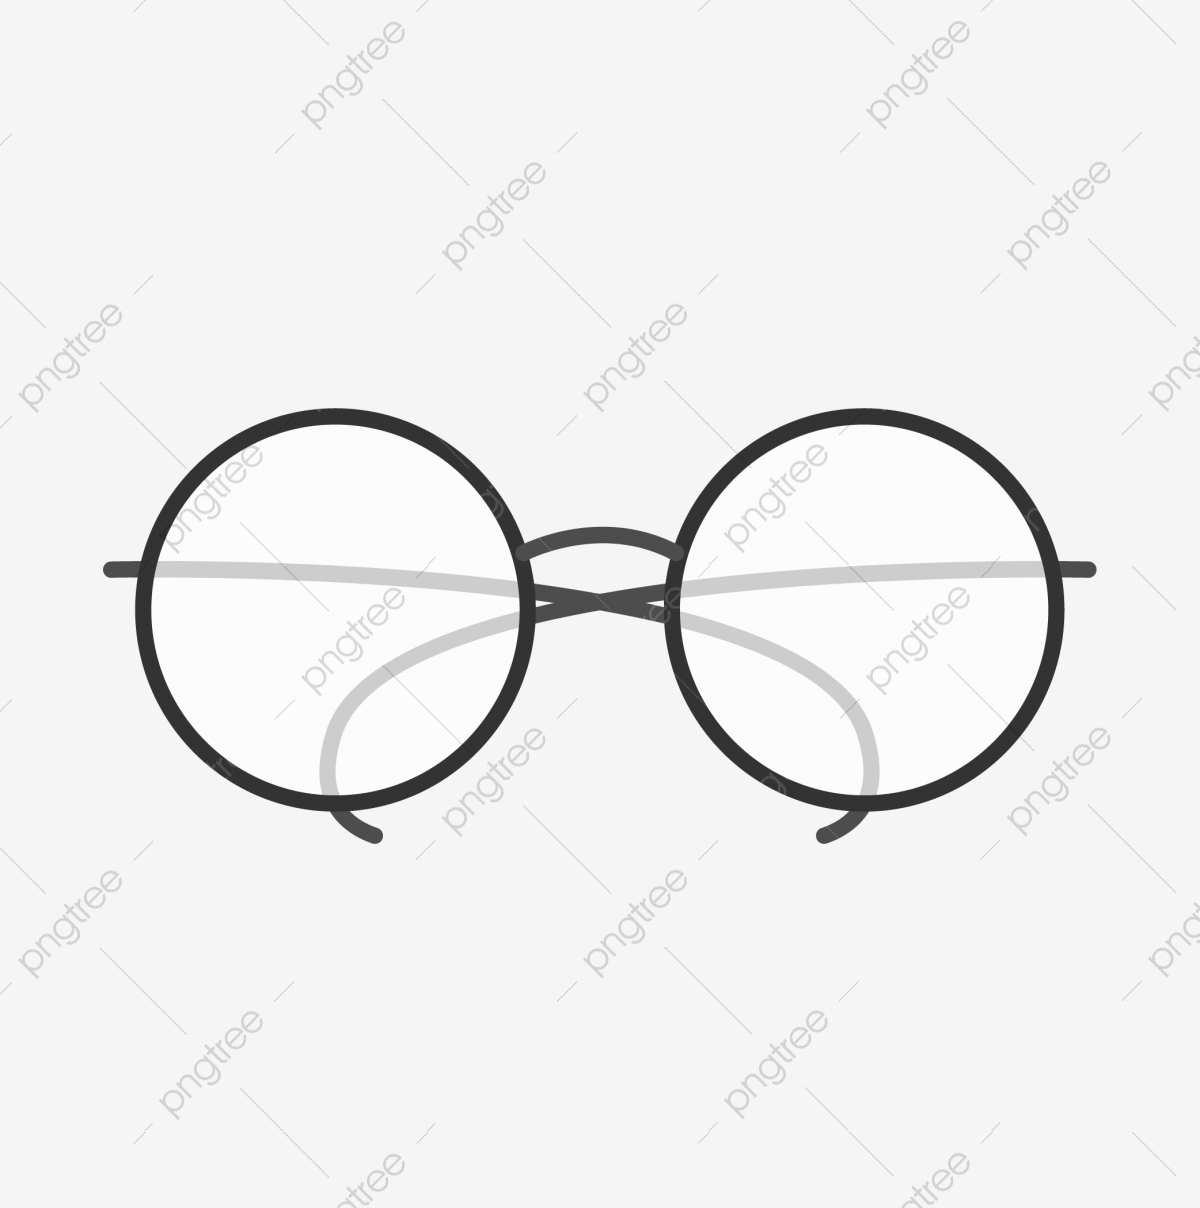 Sunglasses clipart simple. Hand painted cartoon round